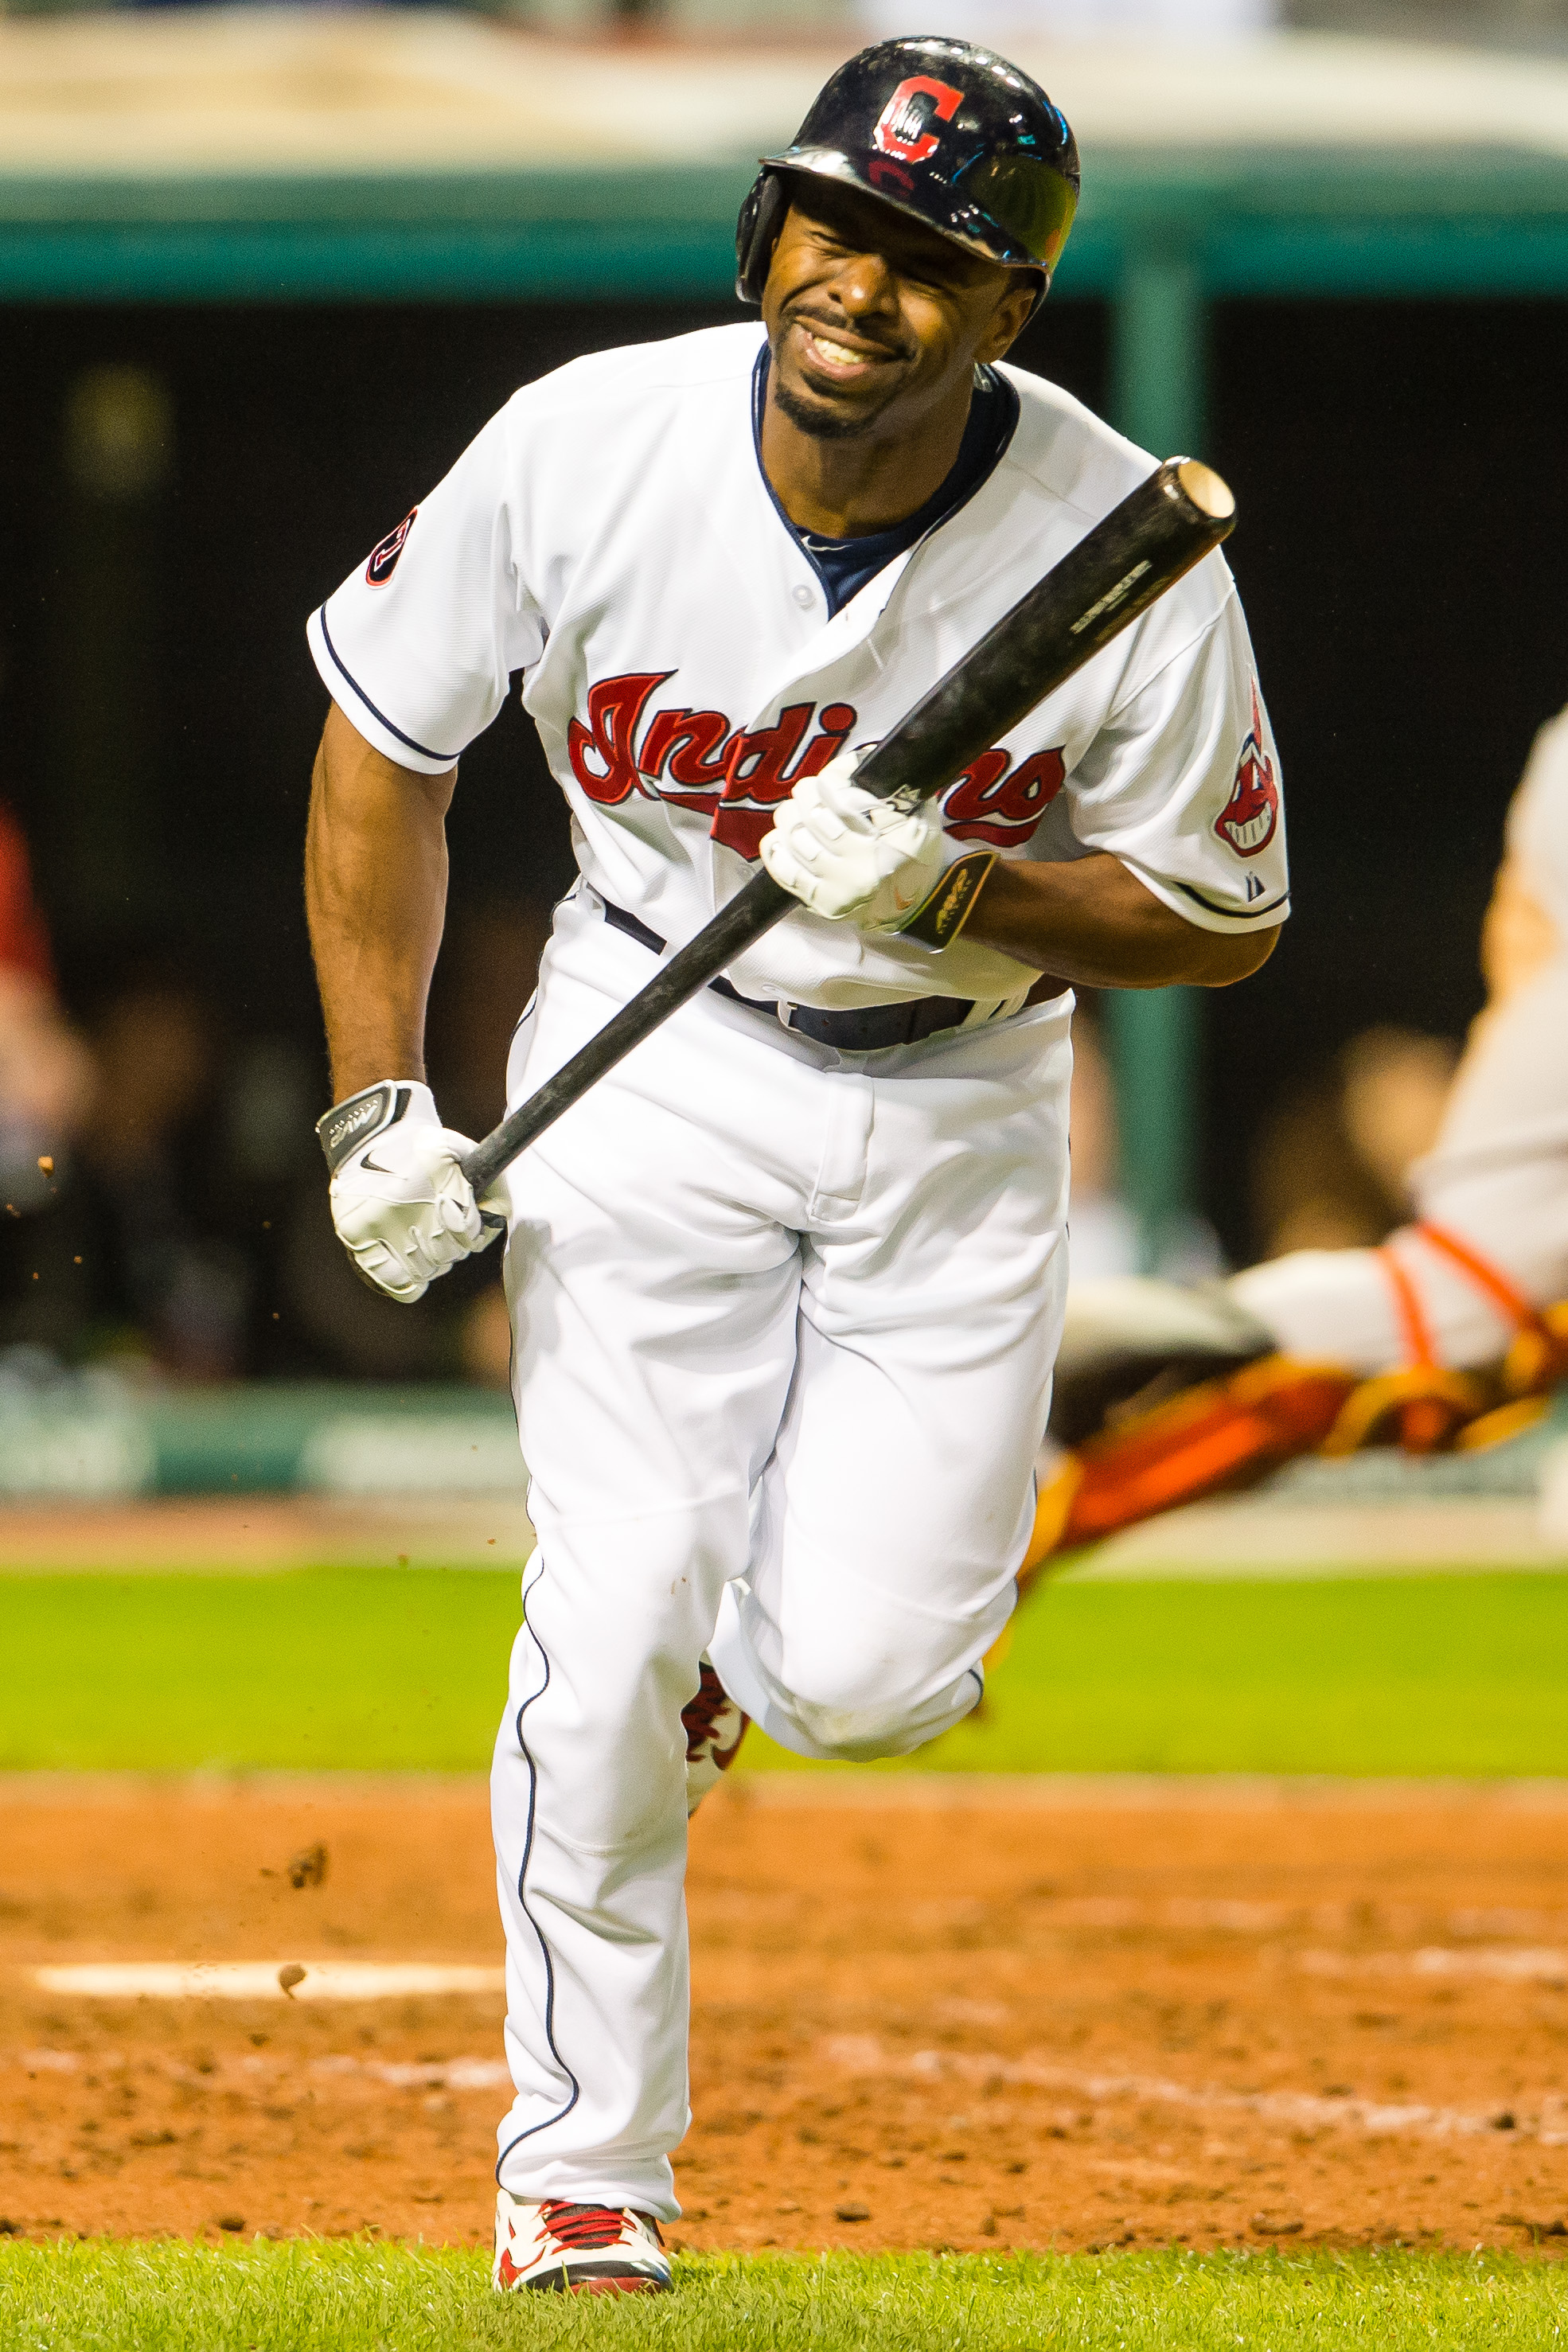 Michael Bourn is pained by the tough decision about which of his teammates should be Player of the Week. * PHOTO